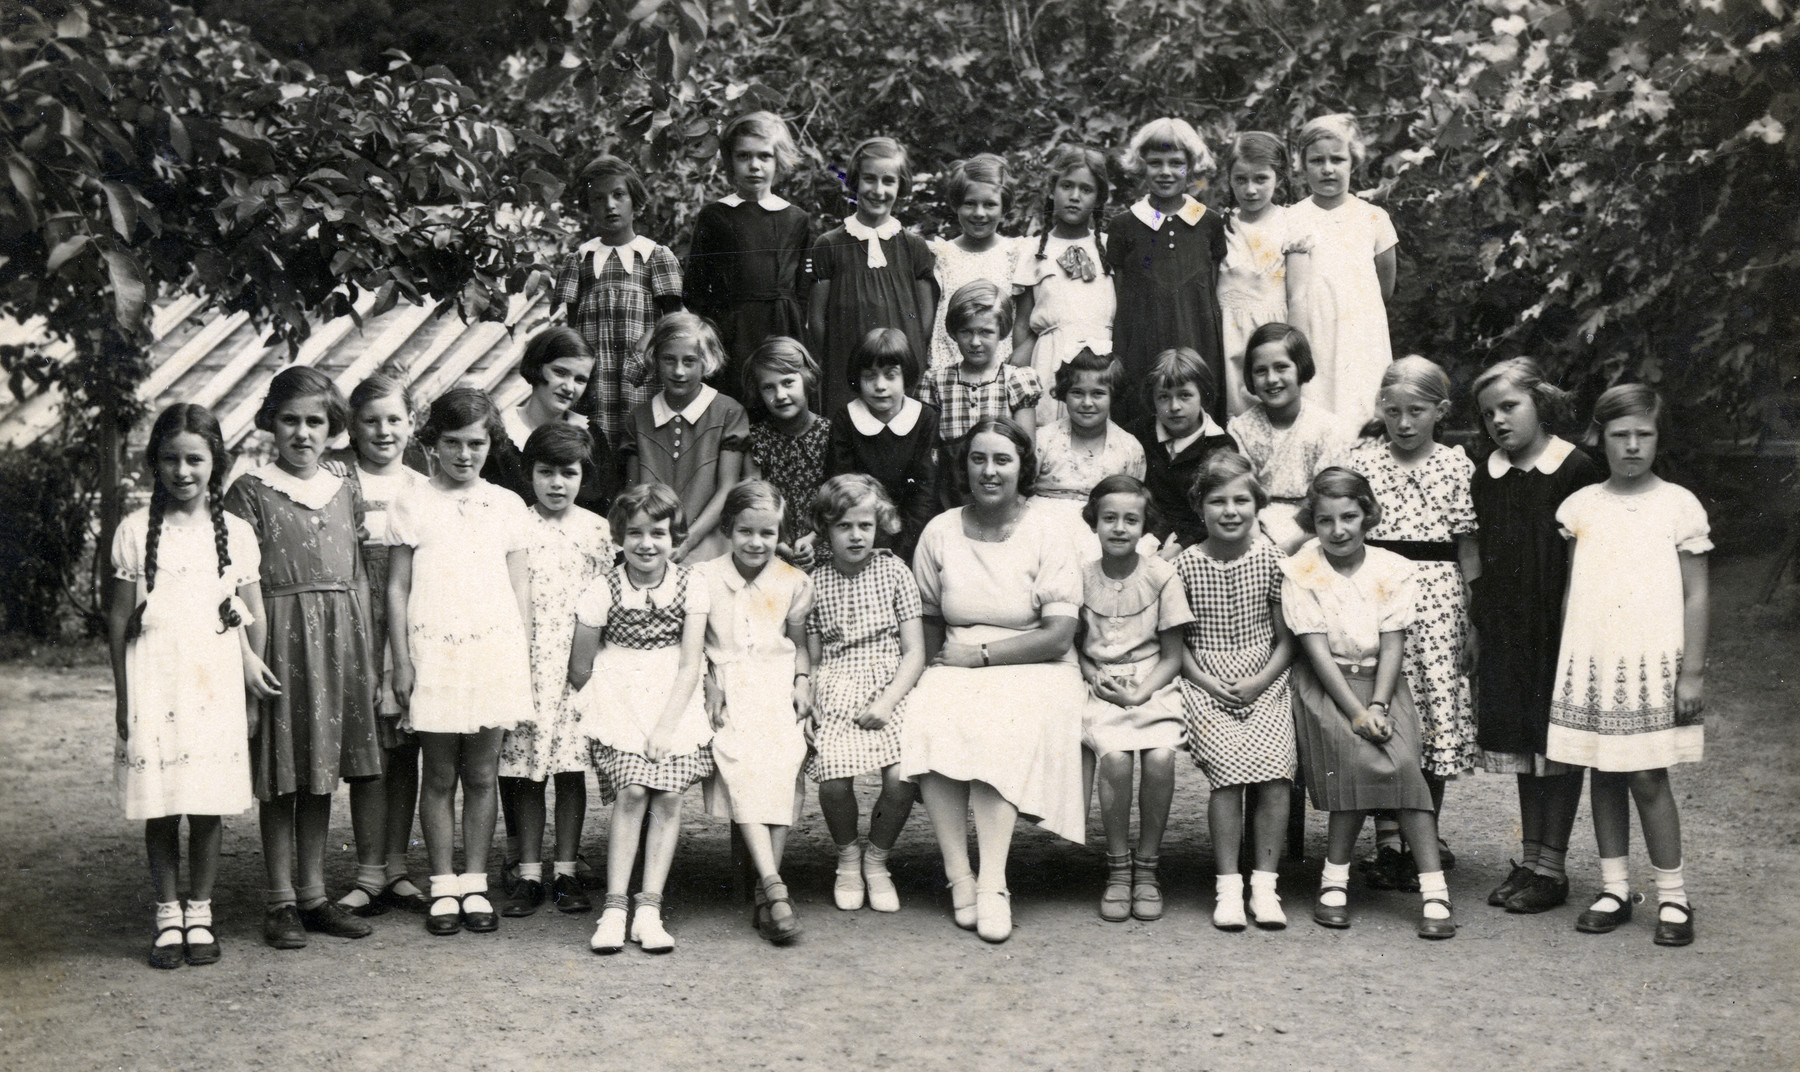 Class portrait of a school in Merano Italy.  Anna Kohn is pictured sitting third from the right.